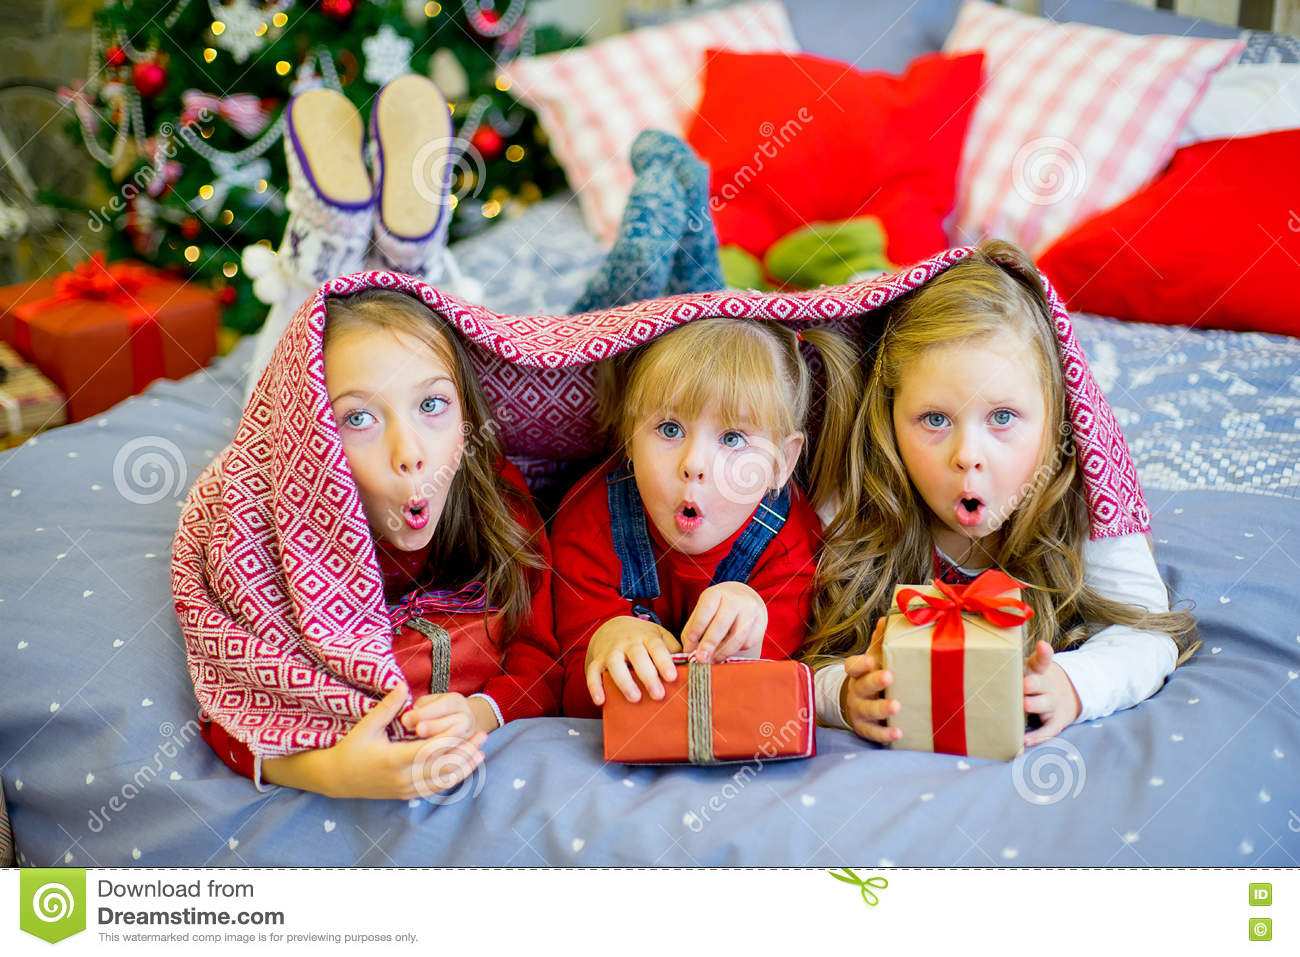 group of kids in red hat lying on the bed next to the christmas tree holding gifts and smiling